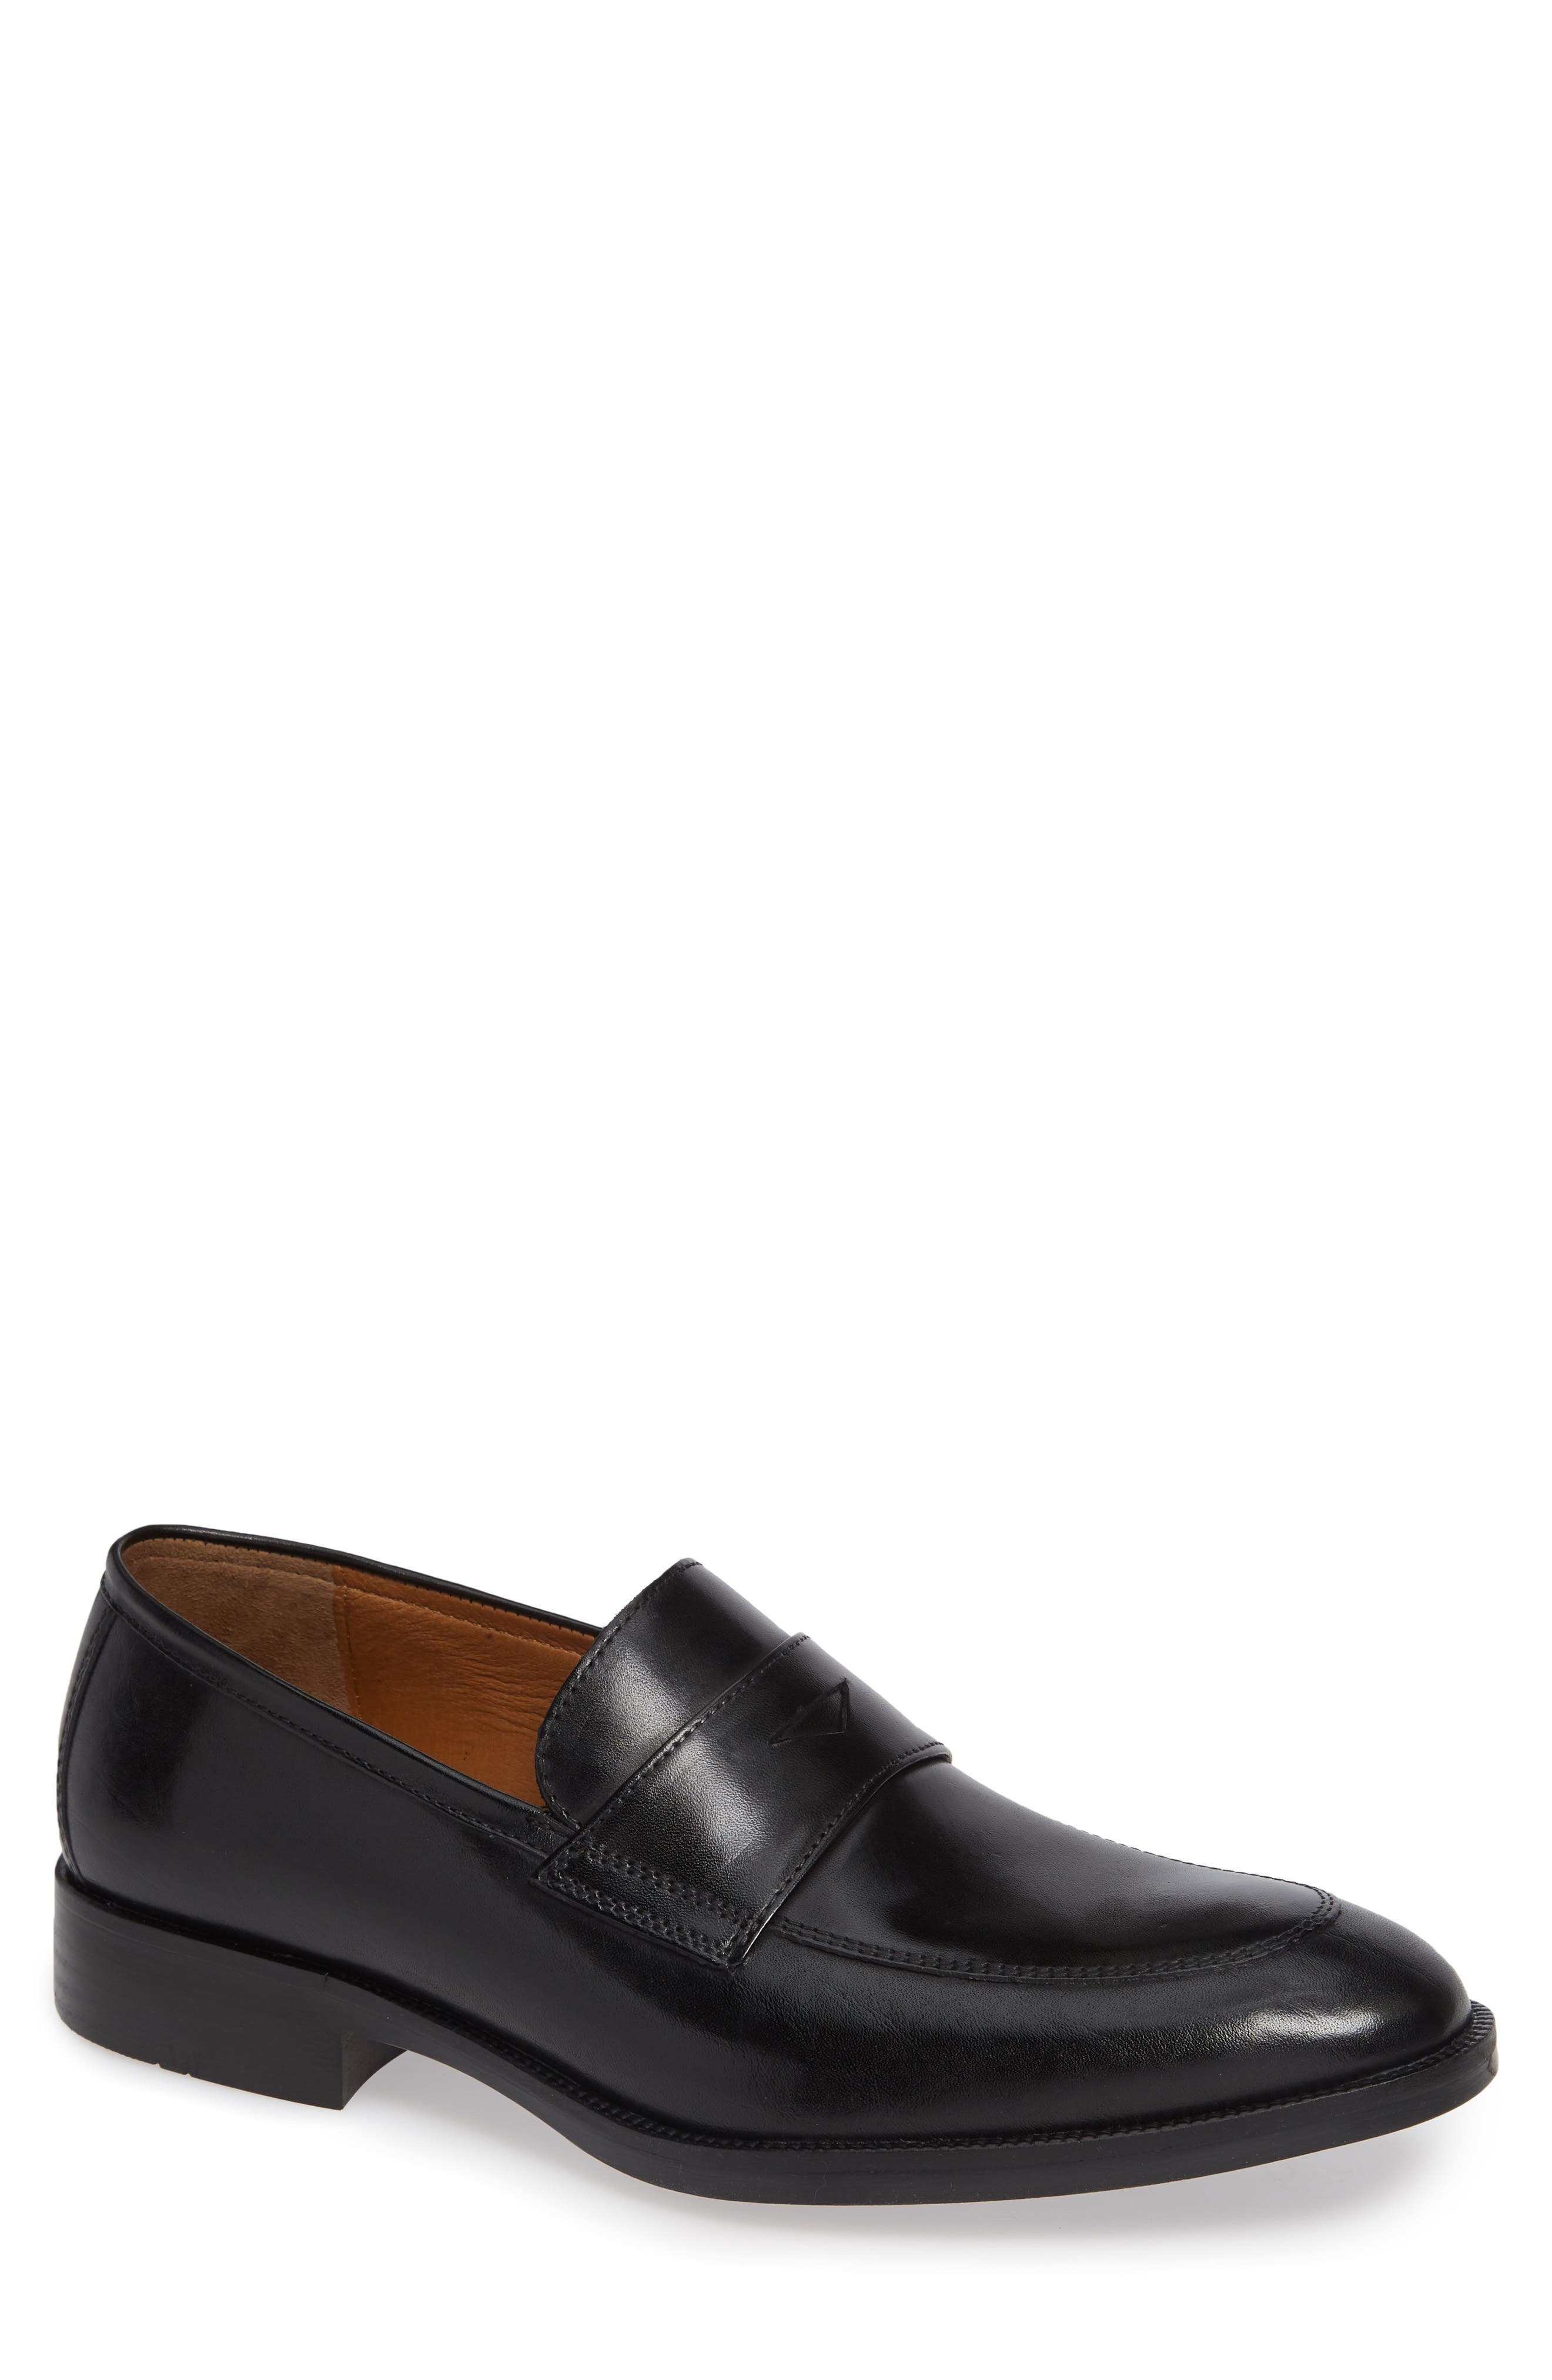 Alcott Penny Loafer,                             Main thumbnail 1, color,                             BLACK LEATHER